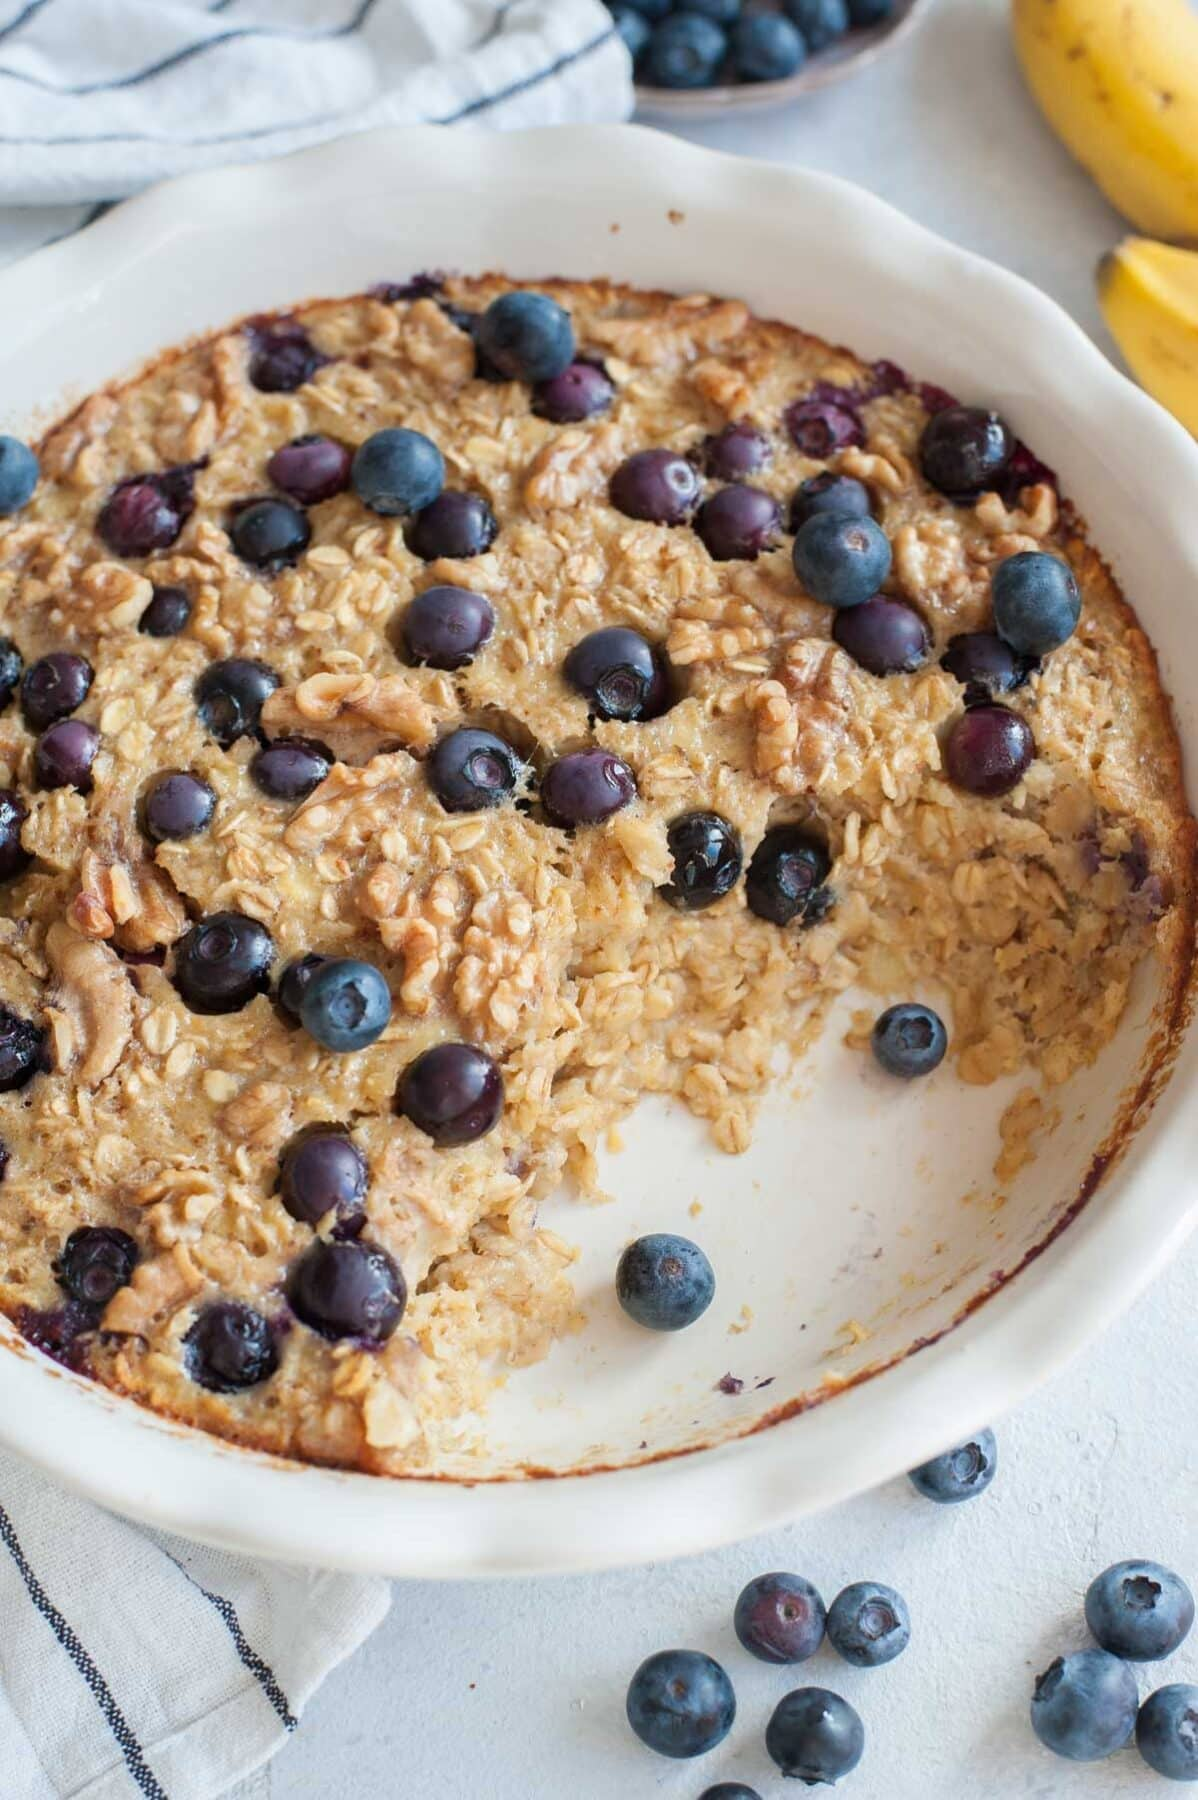 Banana Blueberry baked oatmeal in a white bowl.